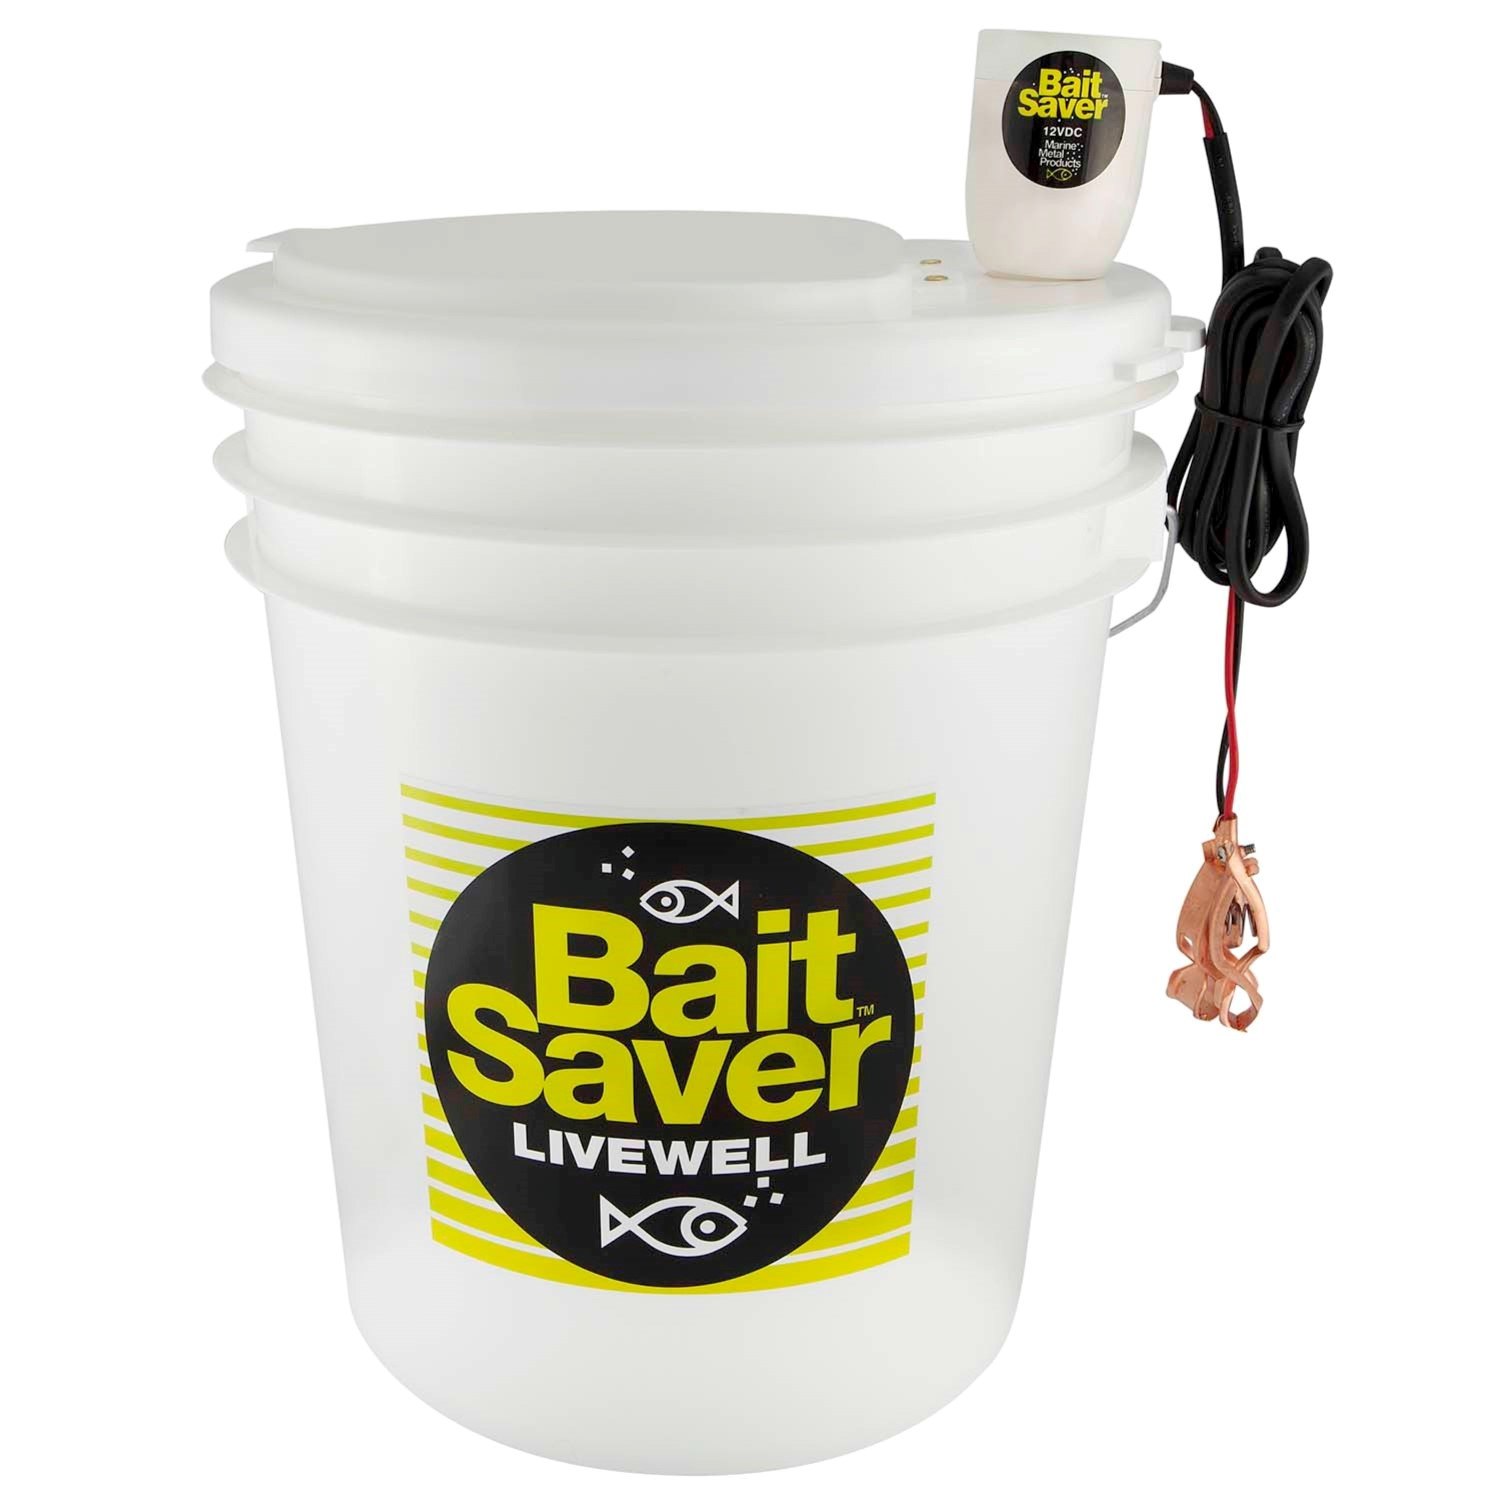 bait saver hooks coupon Shimano btr12000fd baitrunner spin reel fd 3bb+1rb 48:1 265/20lb (0) your price: $18999.